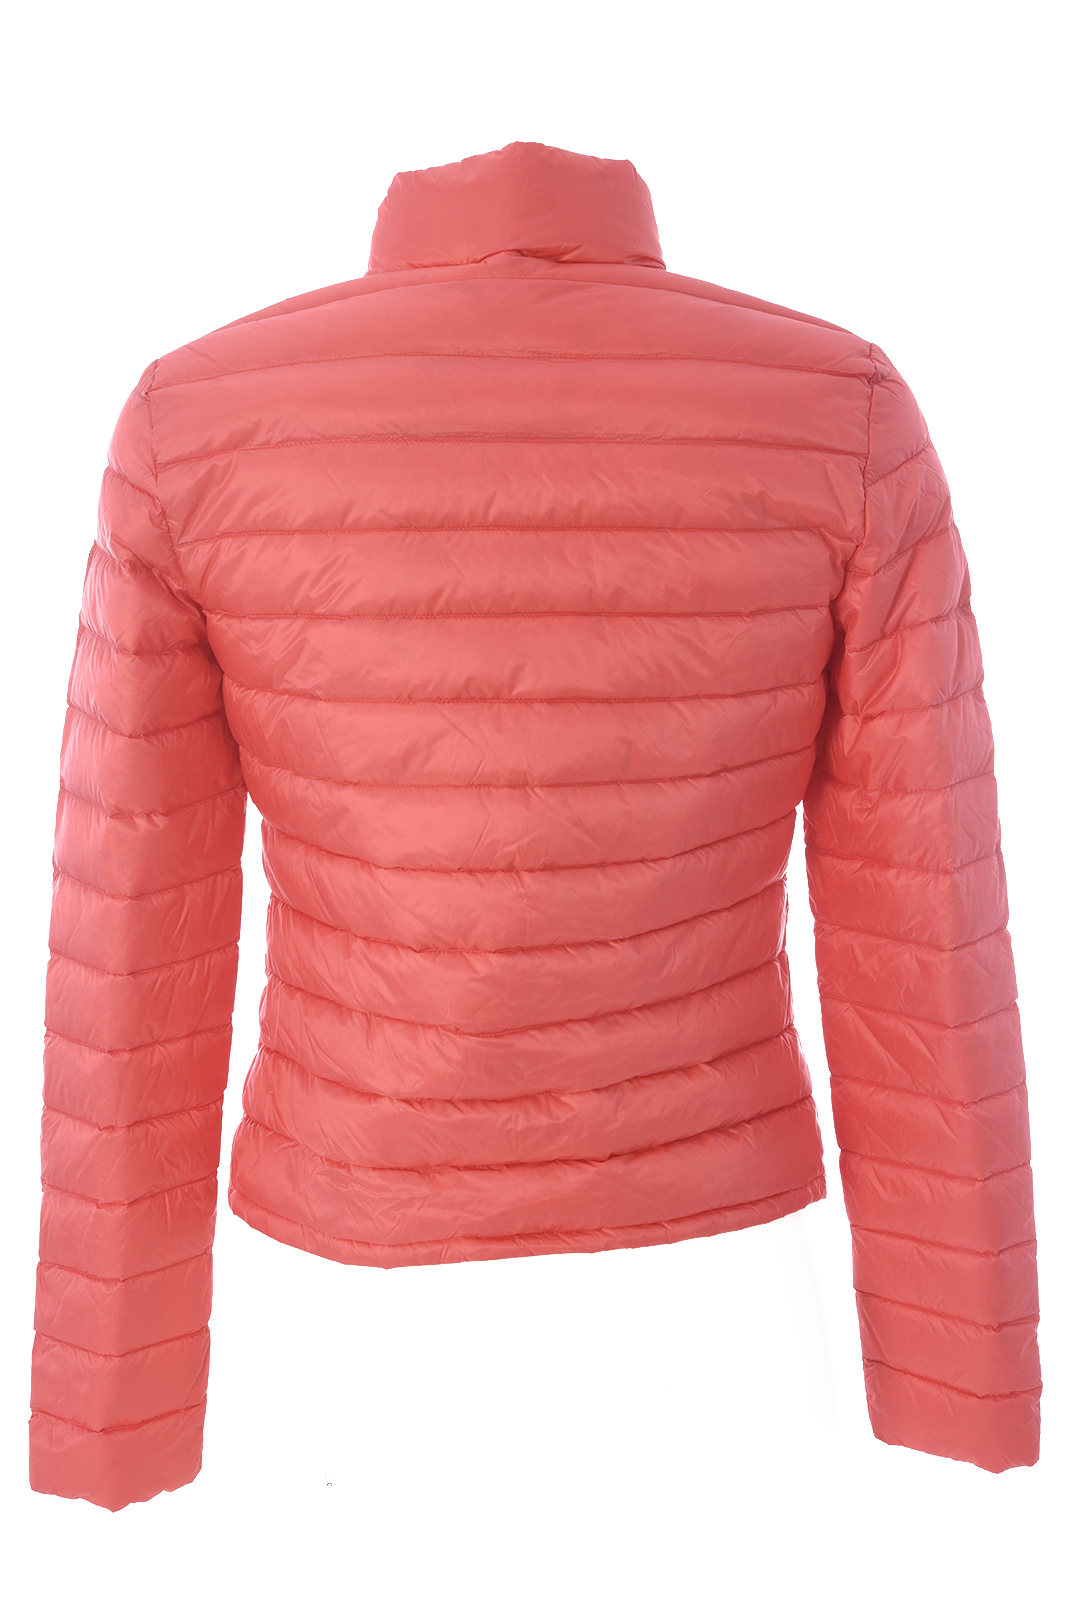 Blouson  Just over the top SONIA 707  CORAIL